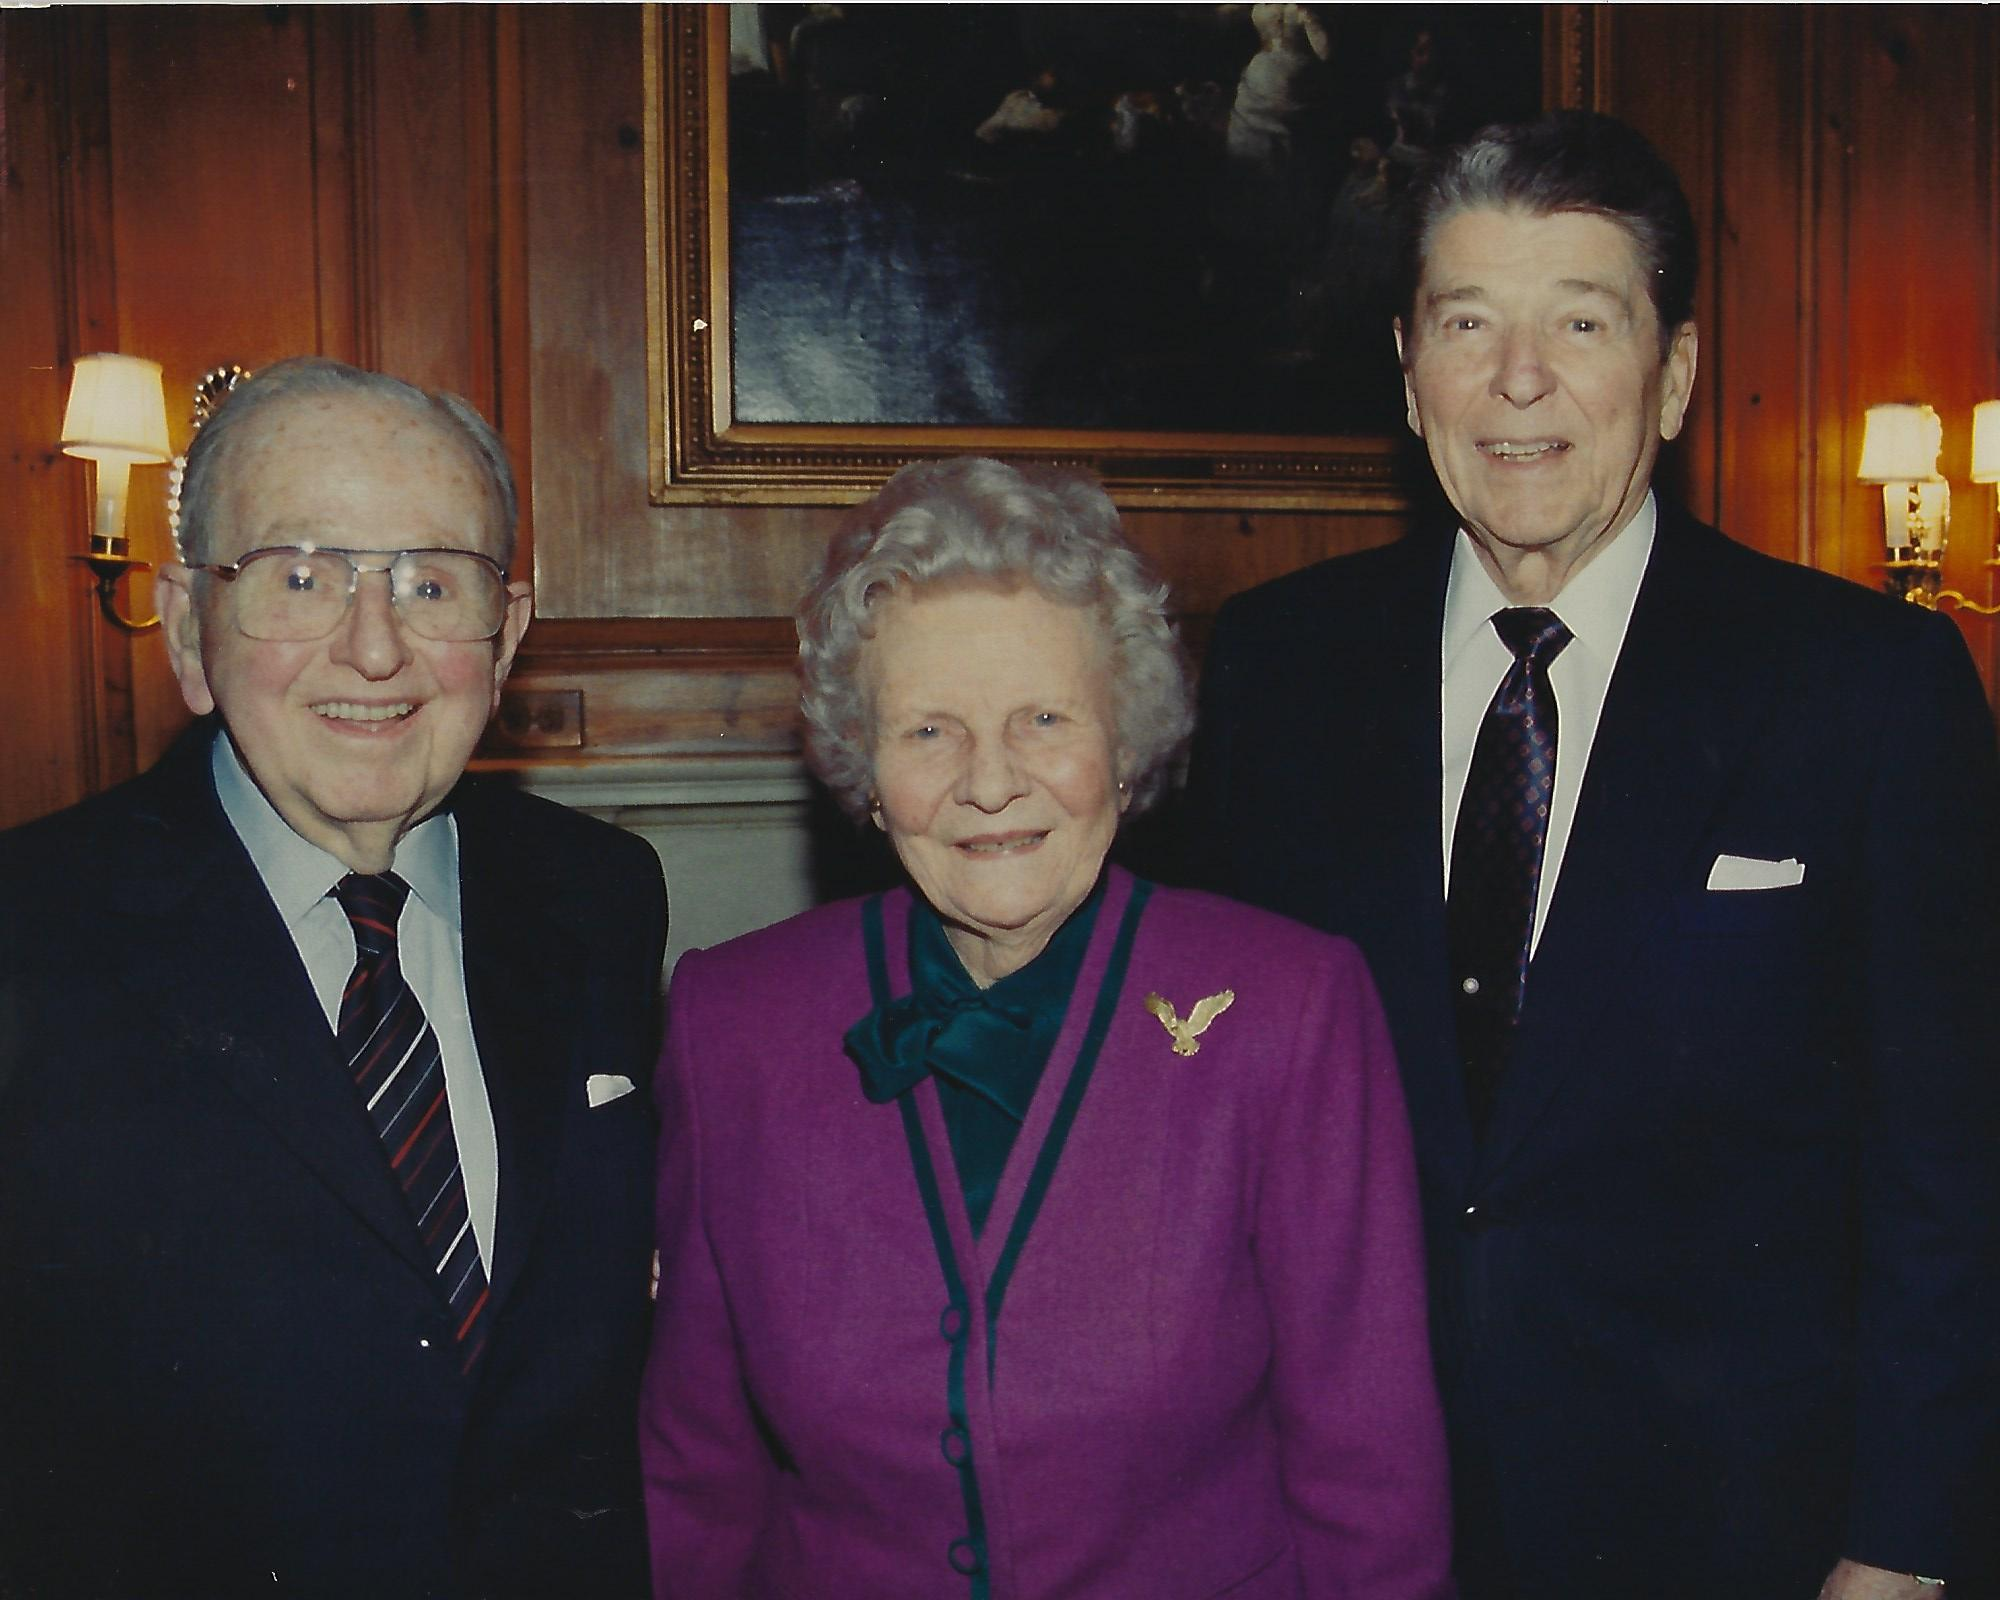 Norman_Vincent_Peale_Ruth_Stafford_PealeRONALD REAGAN